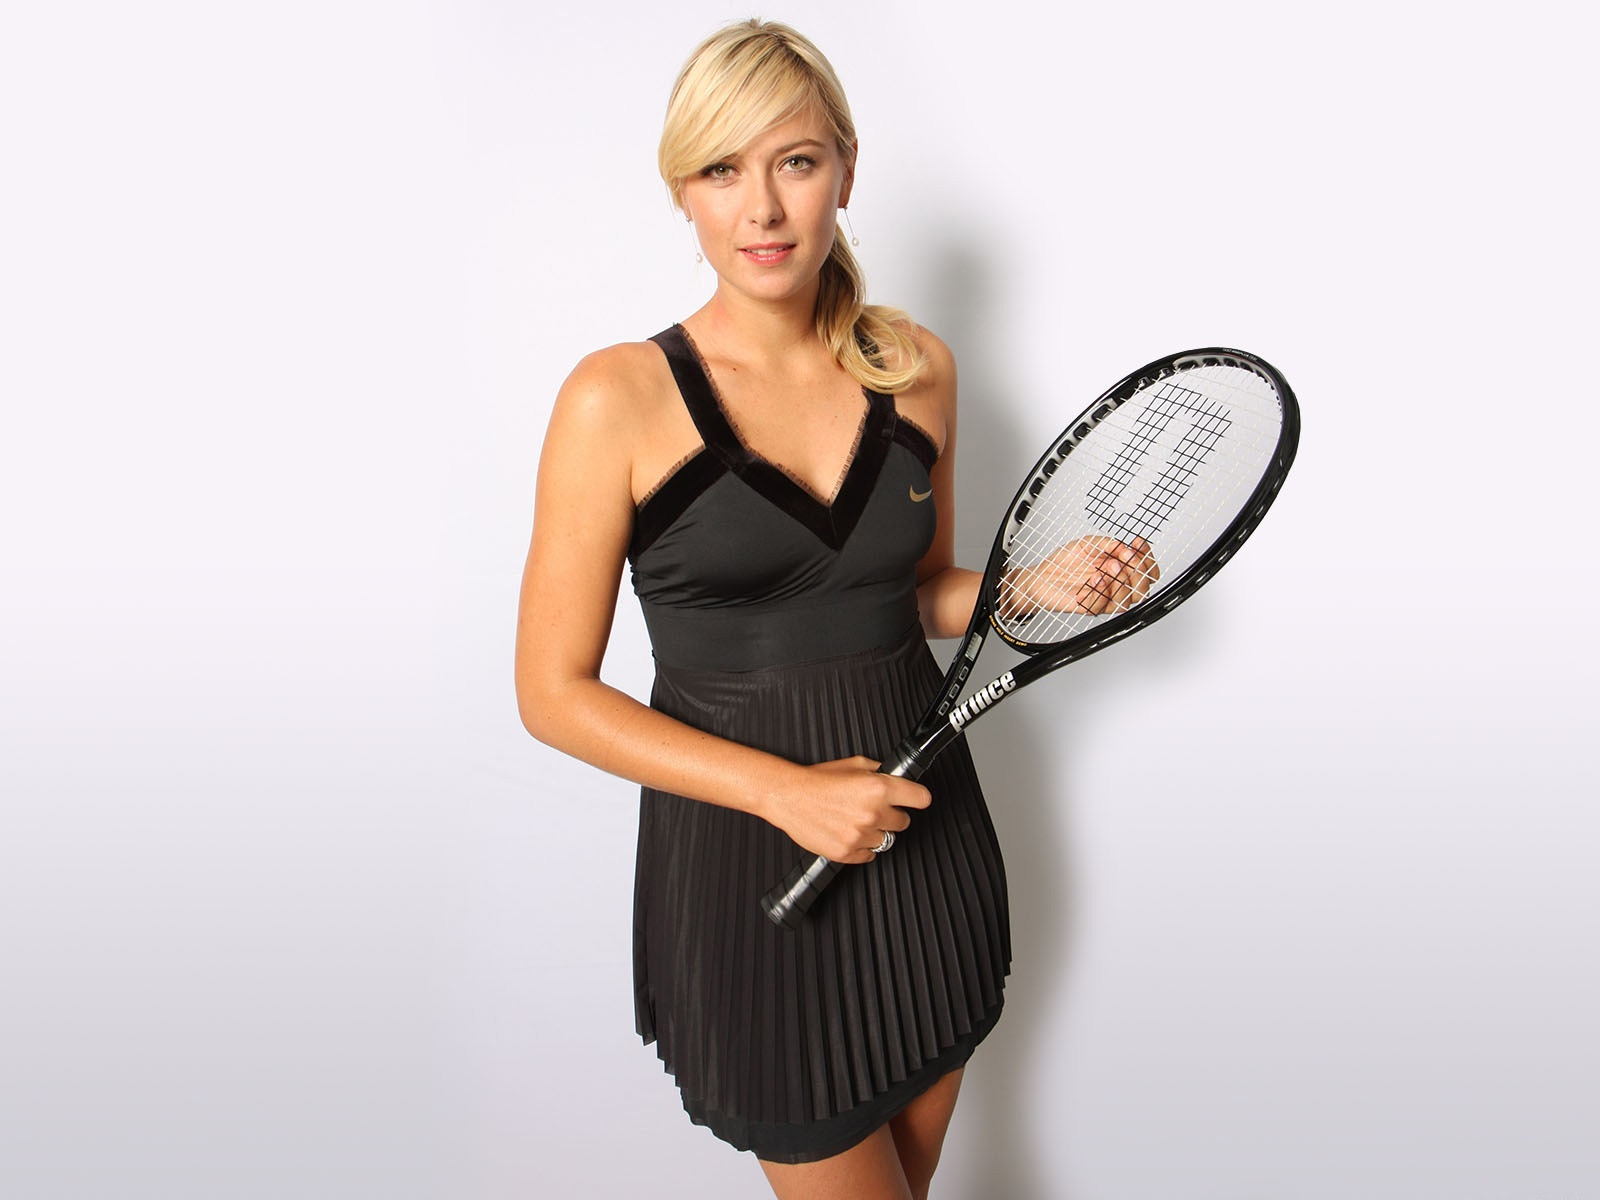 maria sharapova wallpapers hd A5